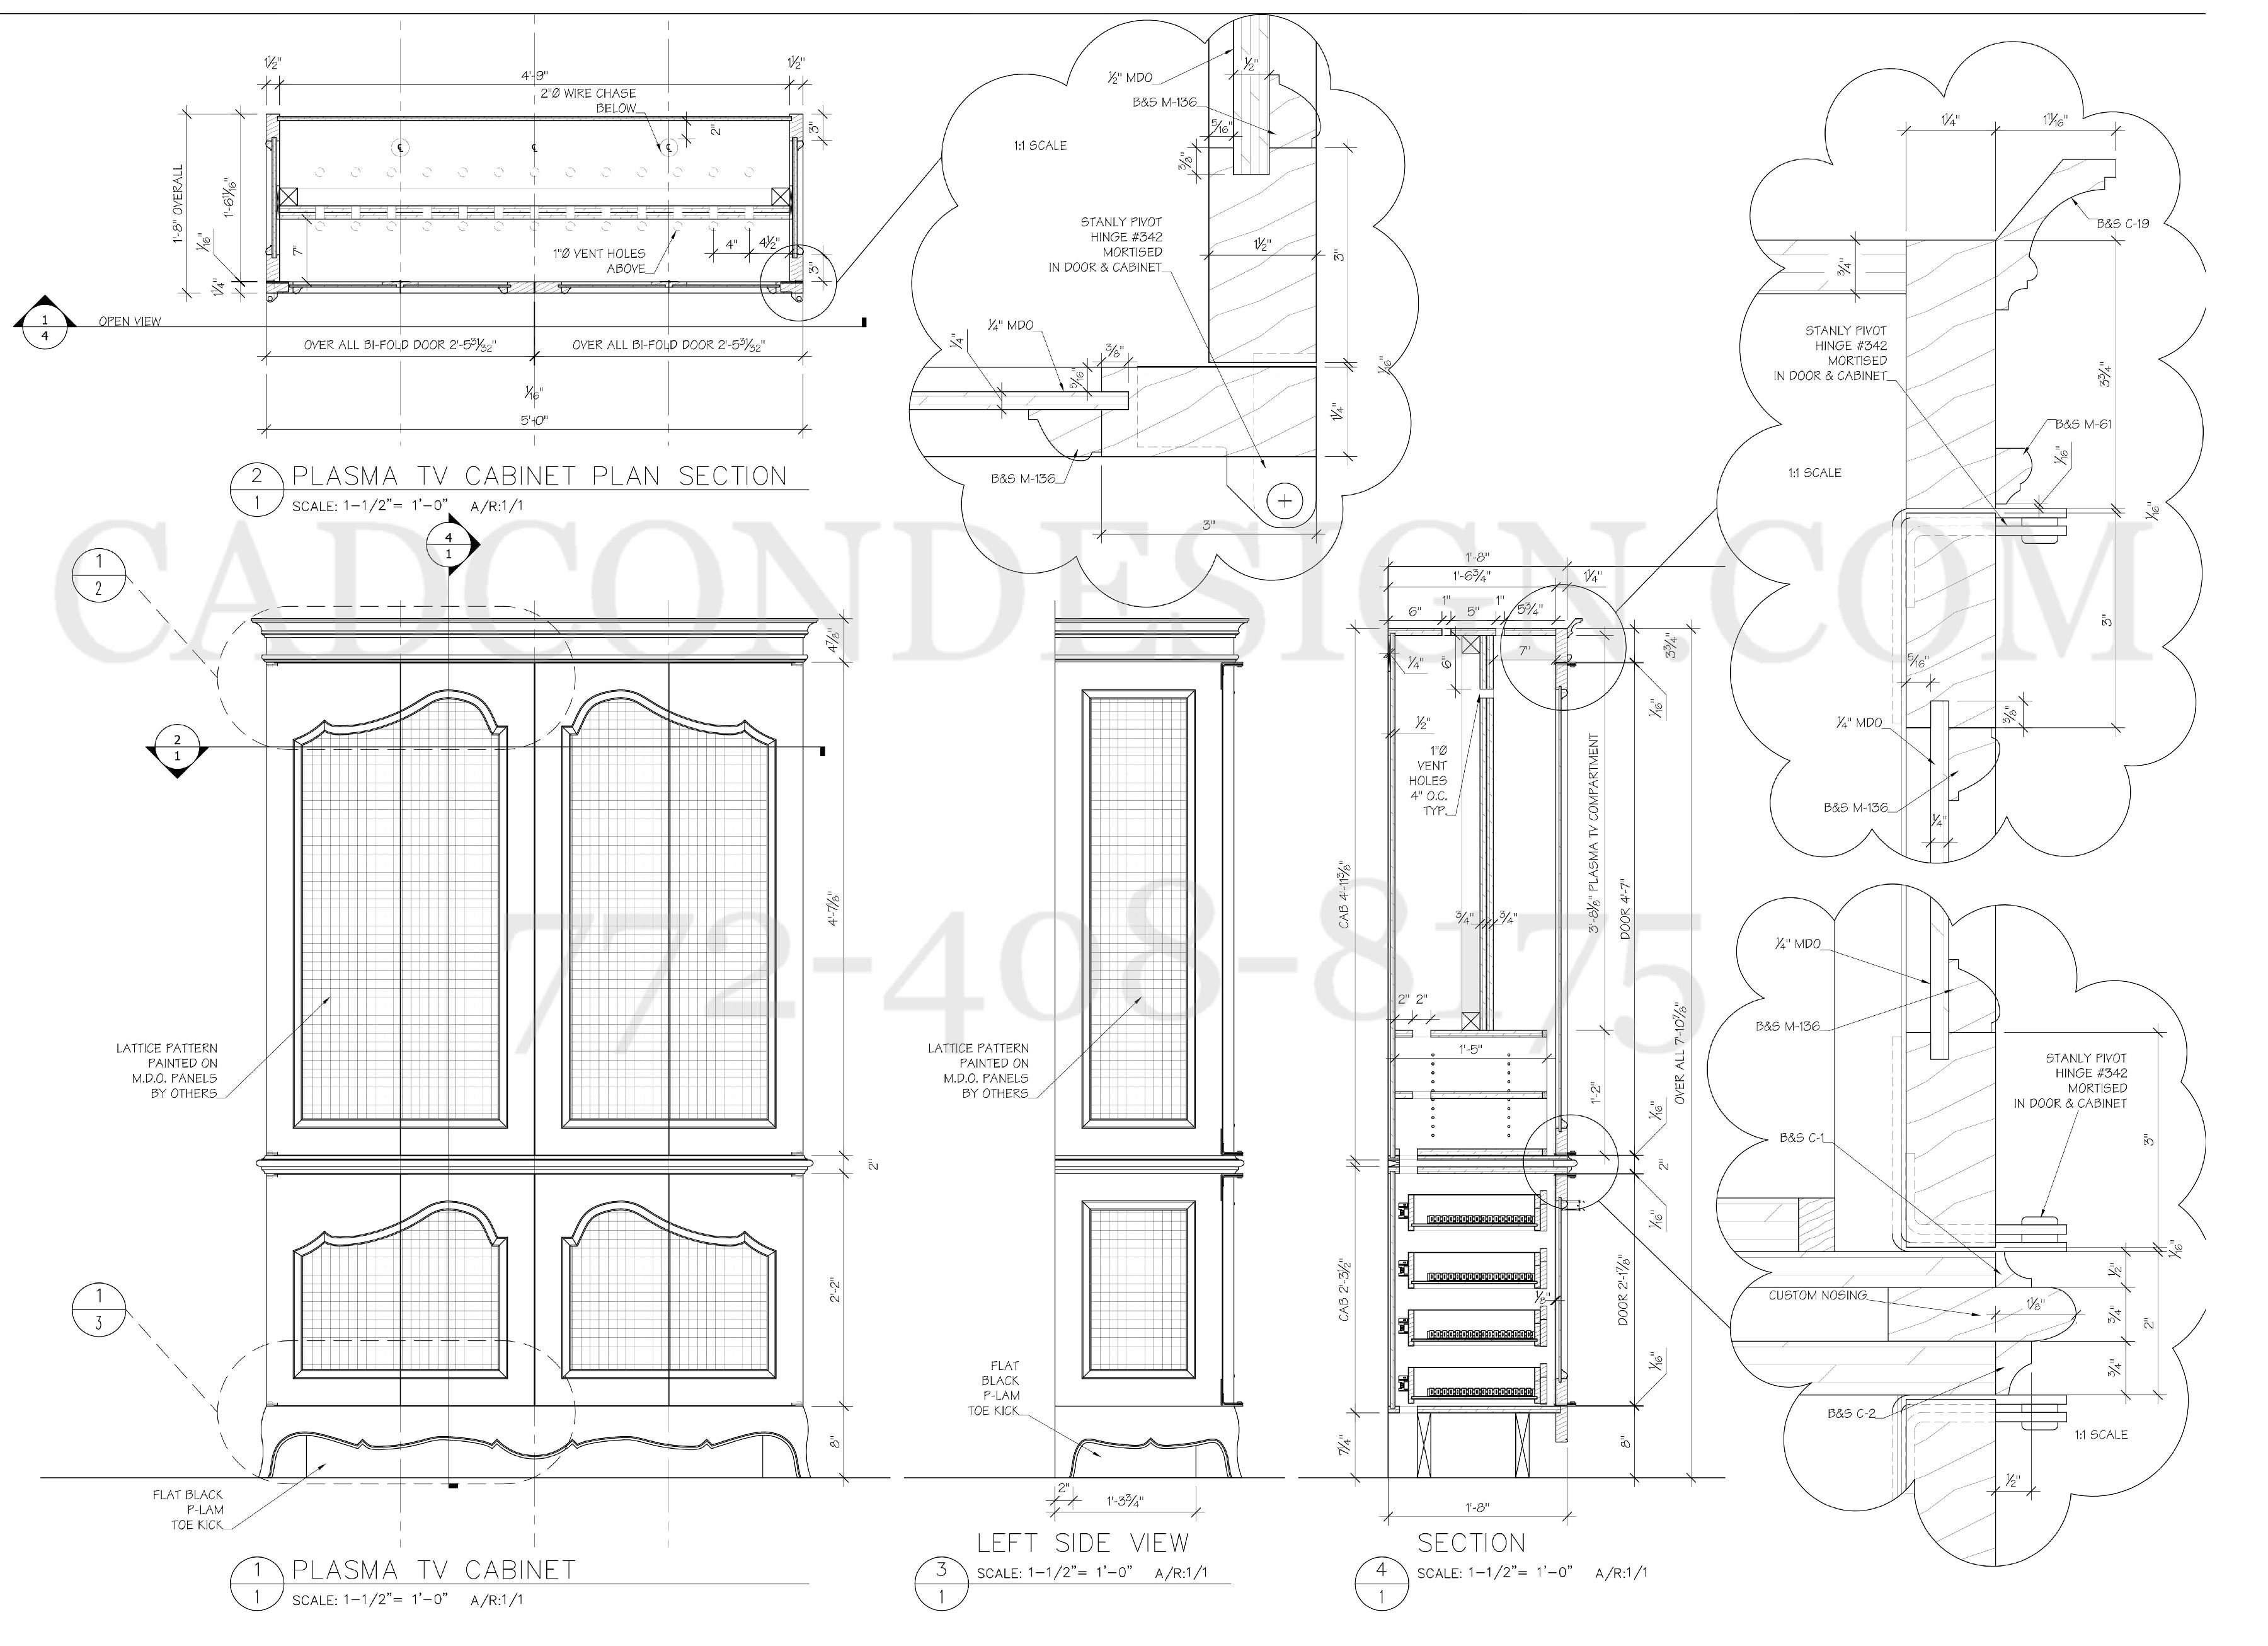 Millwork Shop Drawings Are Like An Insurance Policy That Is